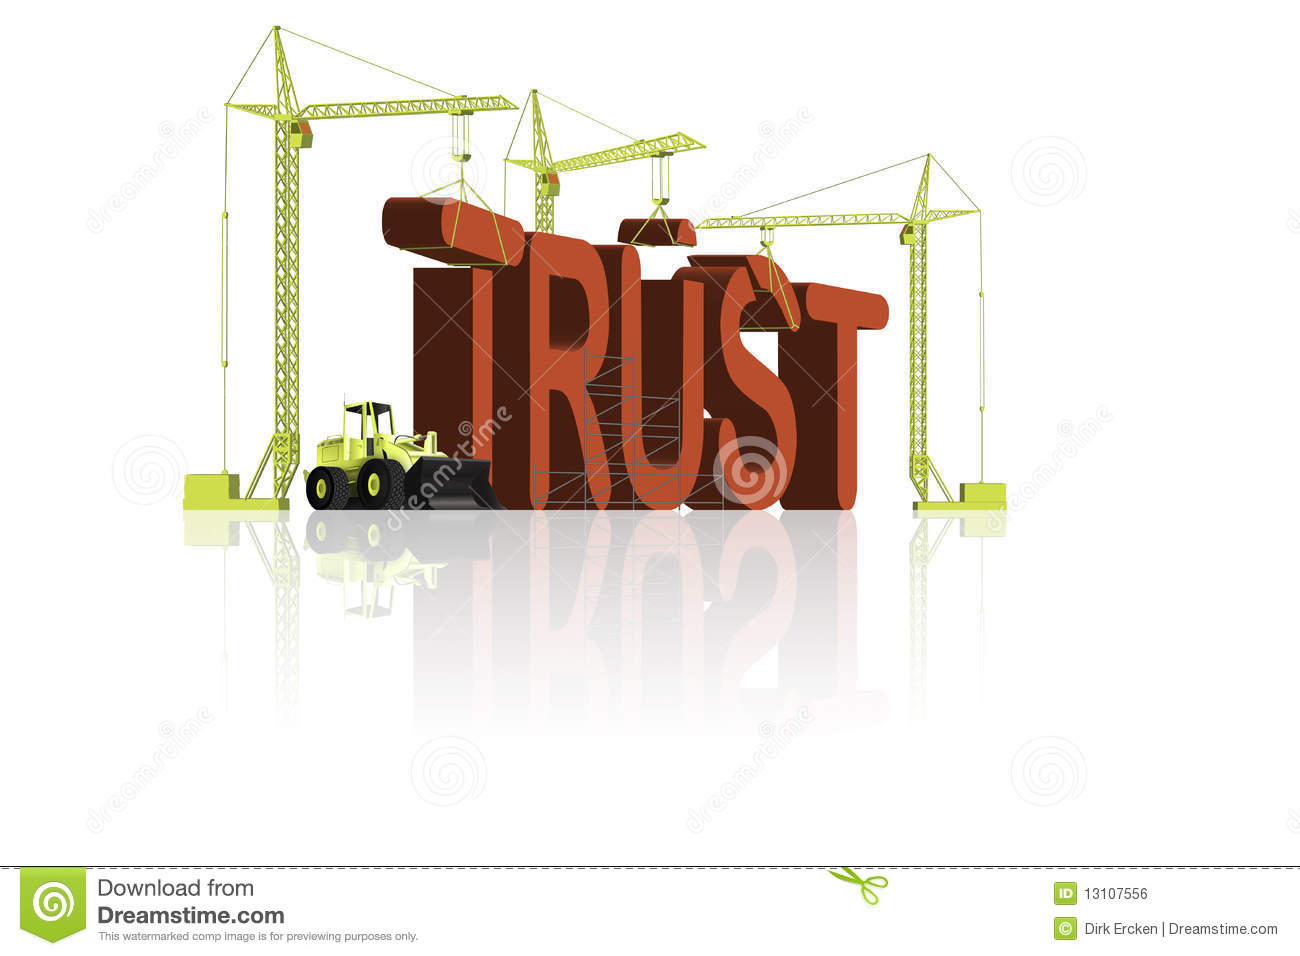 Trust reliability consistency and relationship building